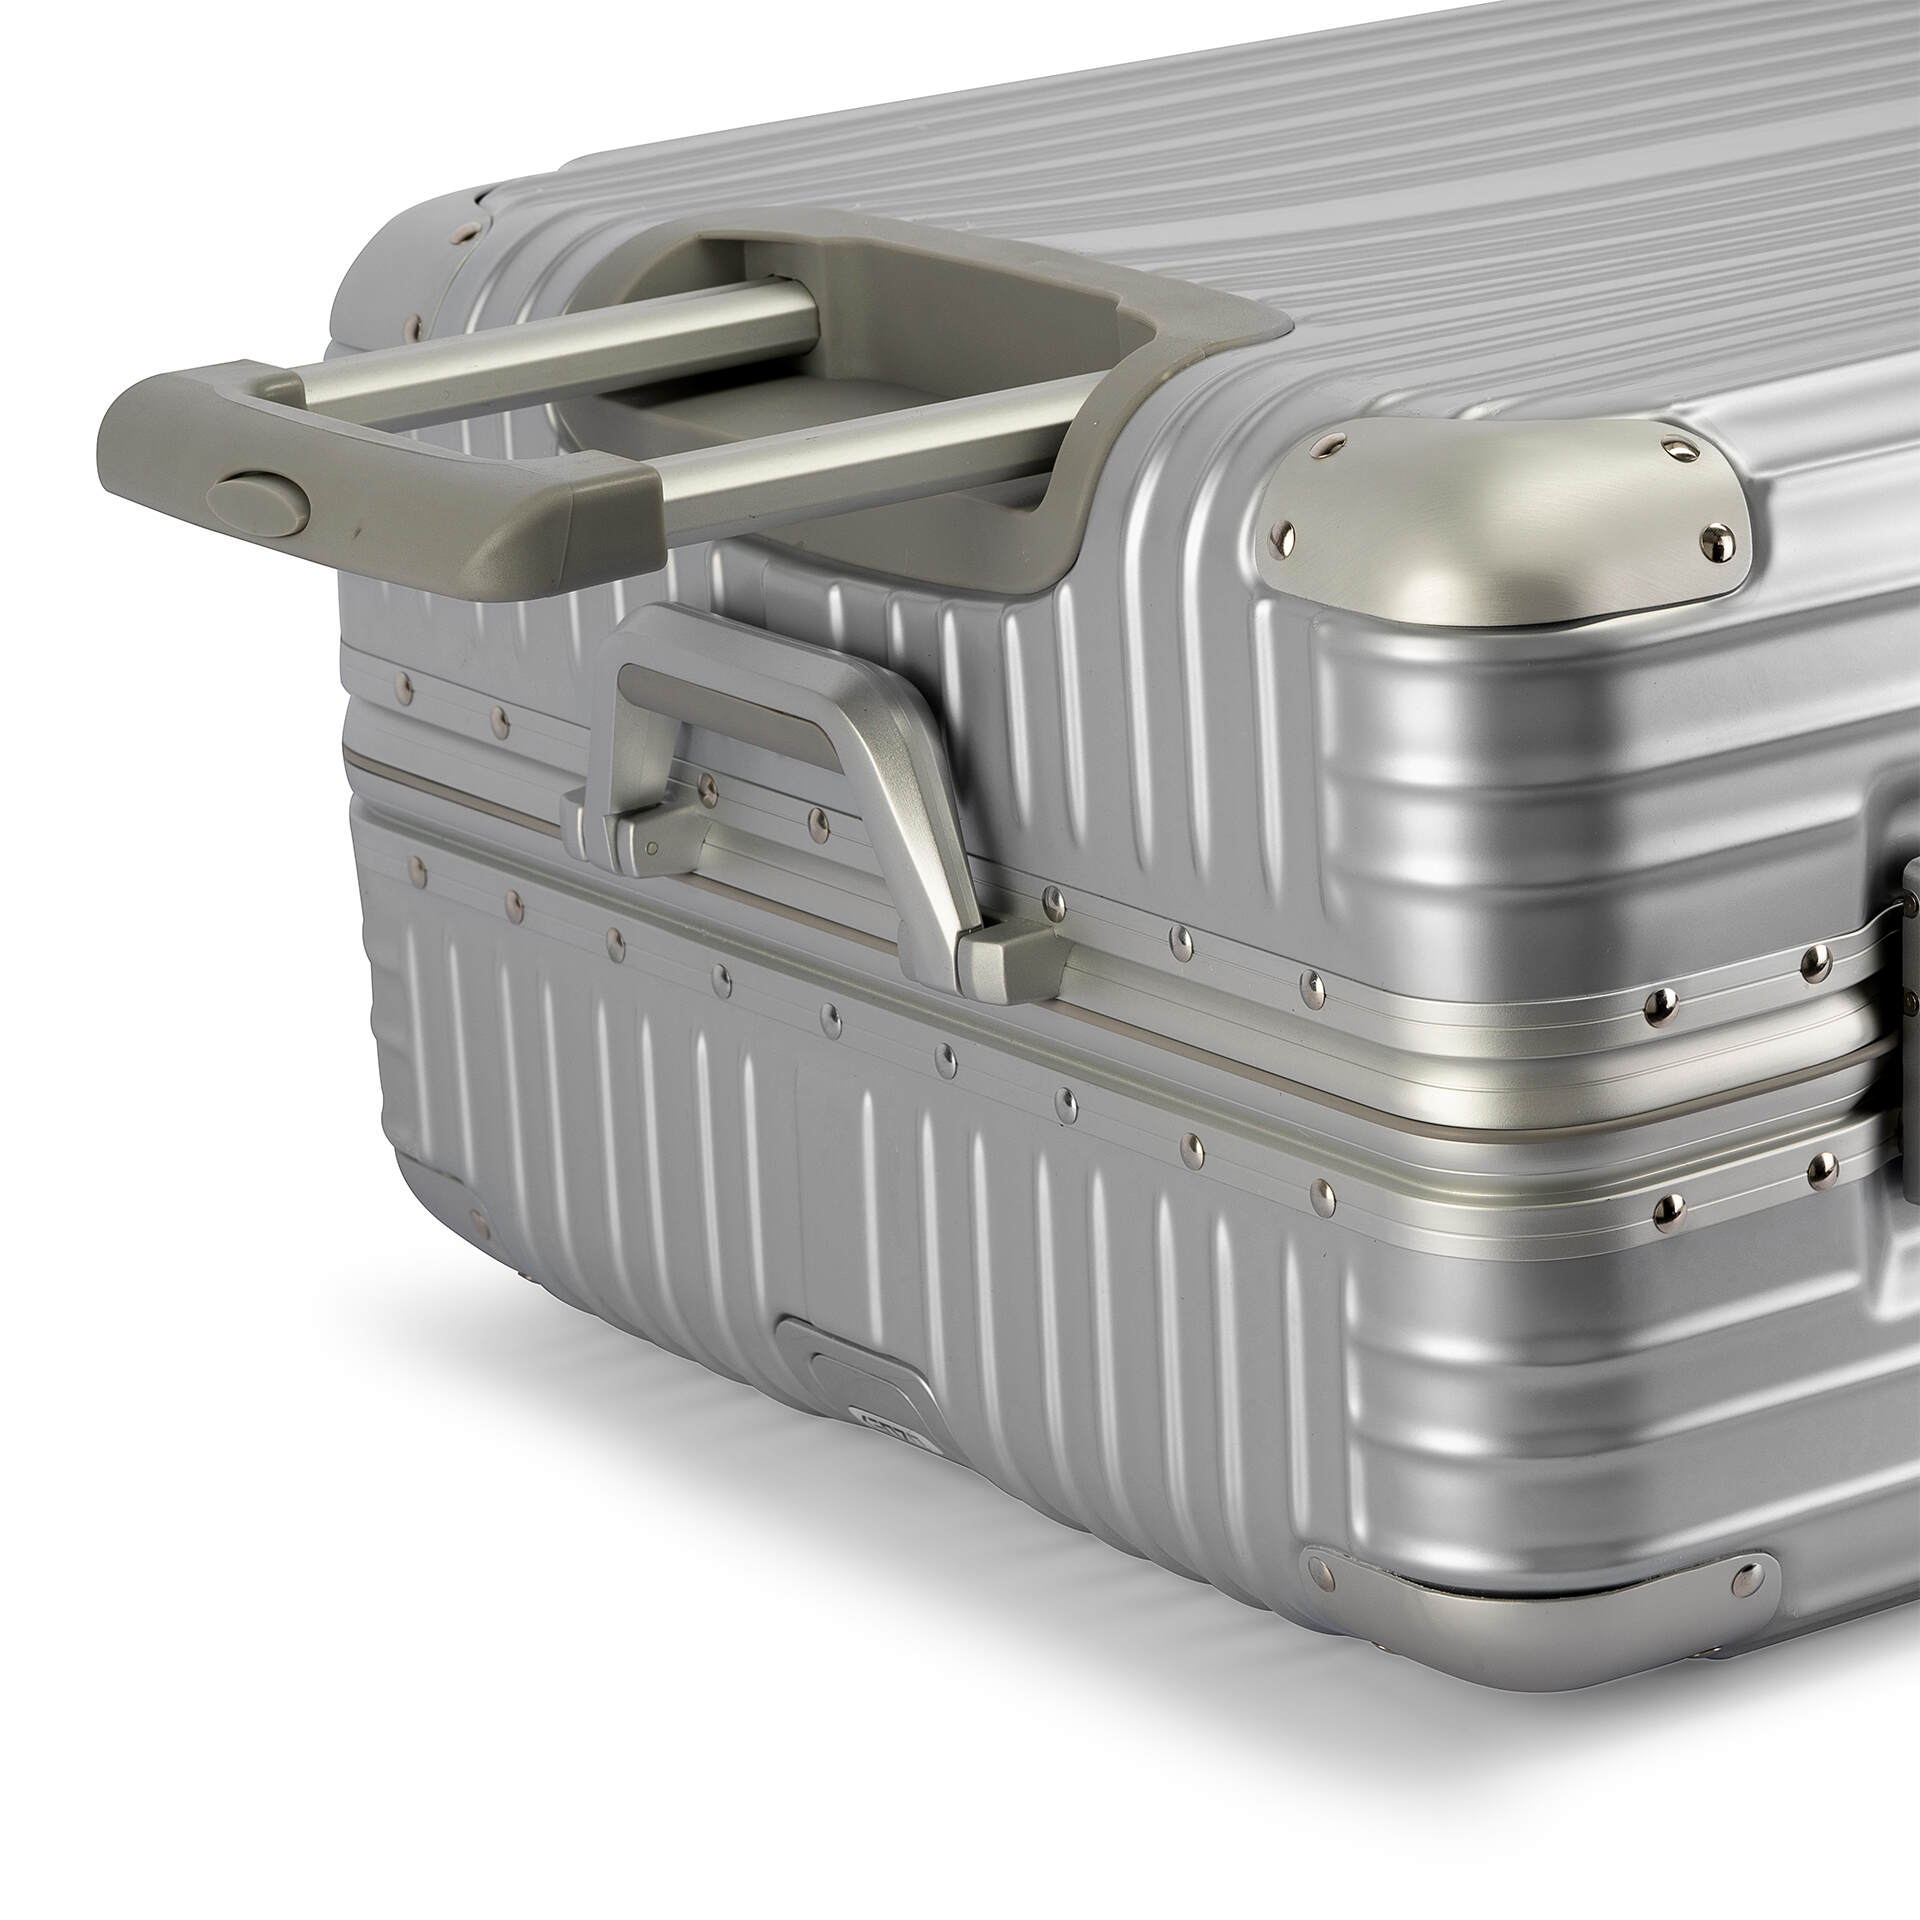 FIVE REASONS TO CARRY A LUGGAGE BAGS EVERYWHERE YOU GO